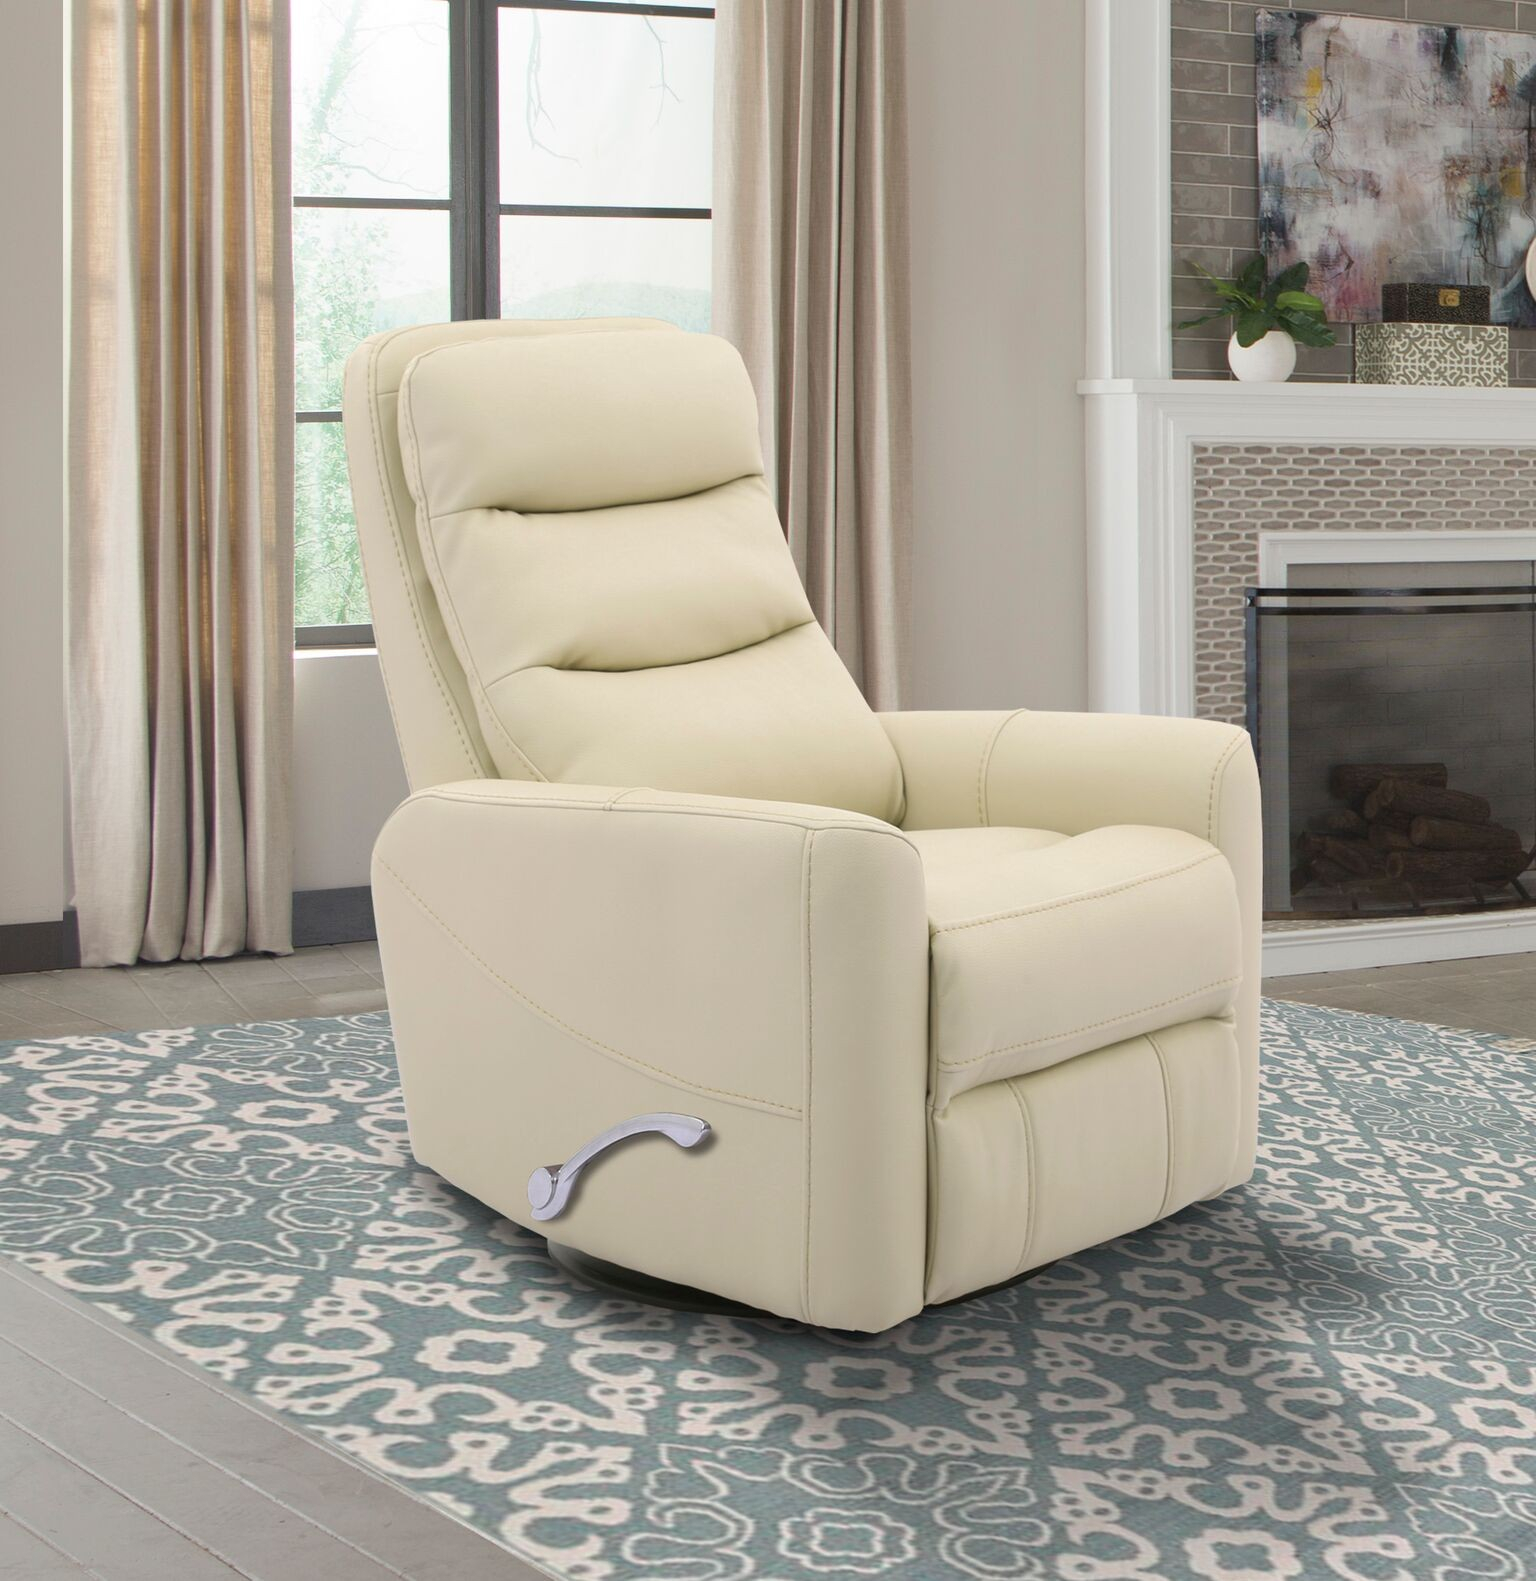 Hercules  Oyster  Swivel Glider Recliner With Articulating Headrest Regarding Hercules Grey Swivel Glider Recliners (Image 9 of 20)